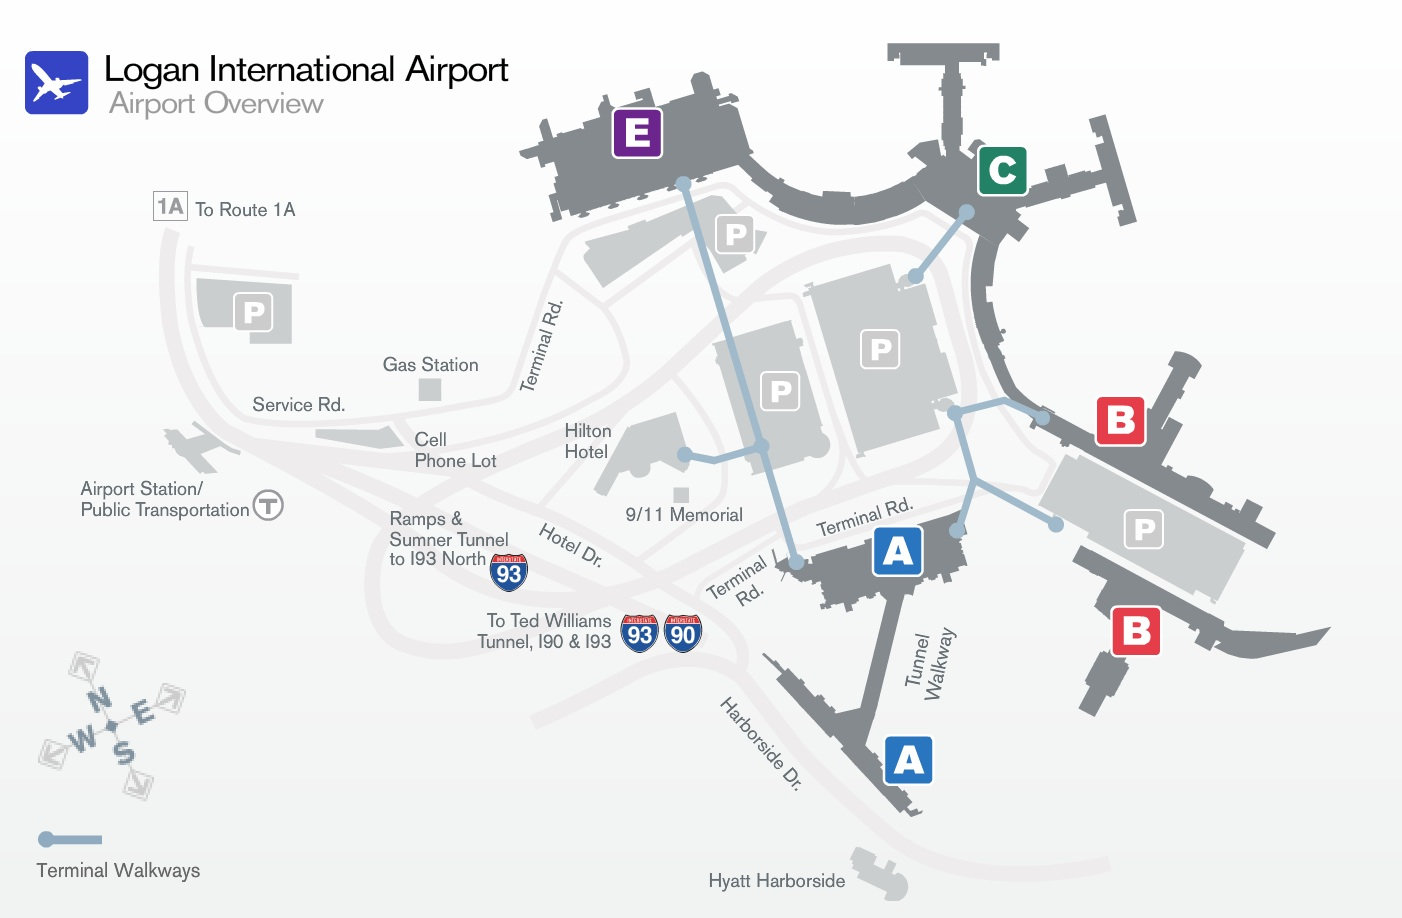 bos airport terminal map Massport World Airline News bos airport terminal map